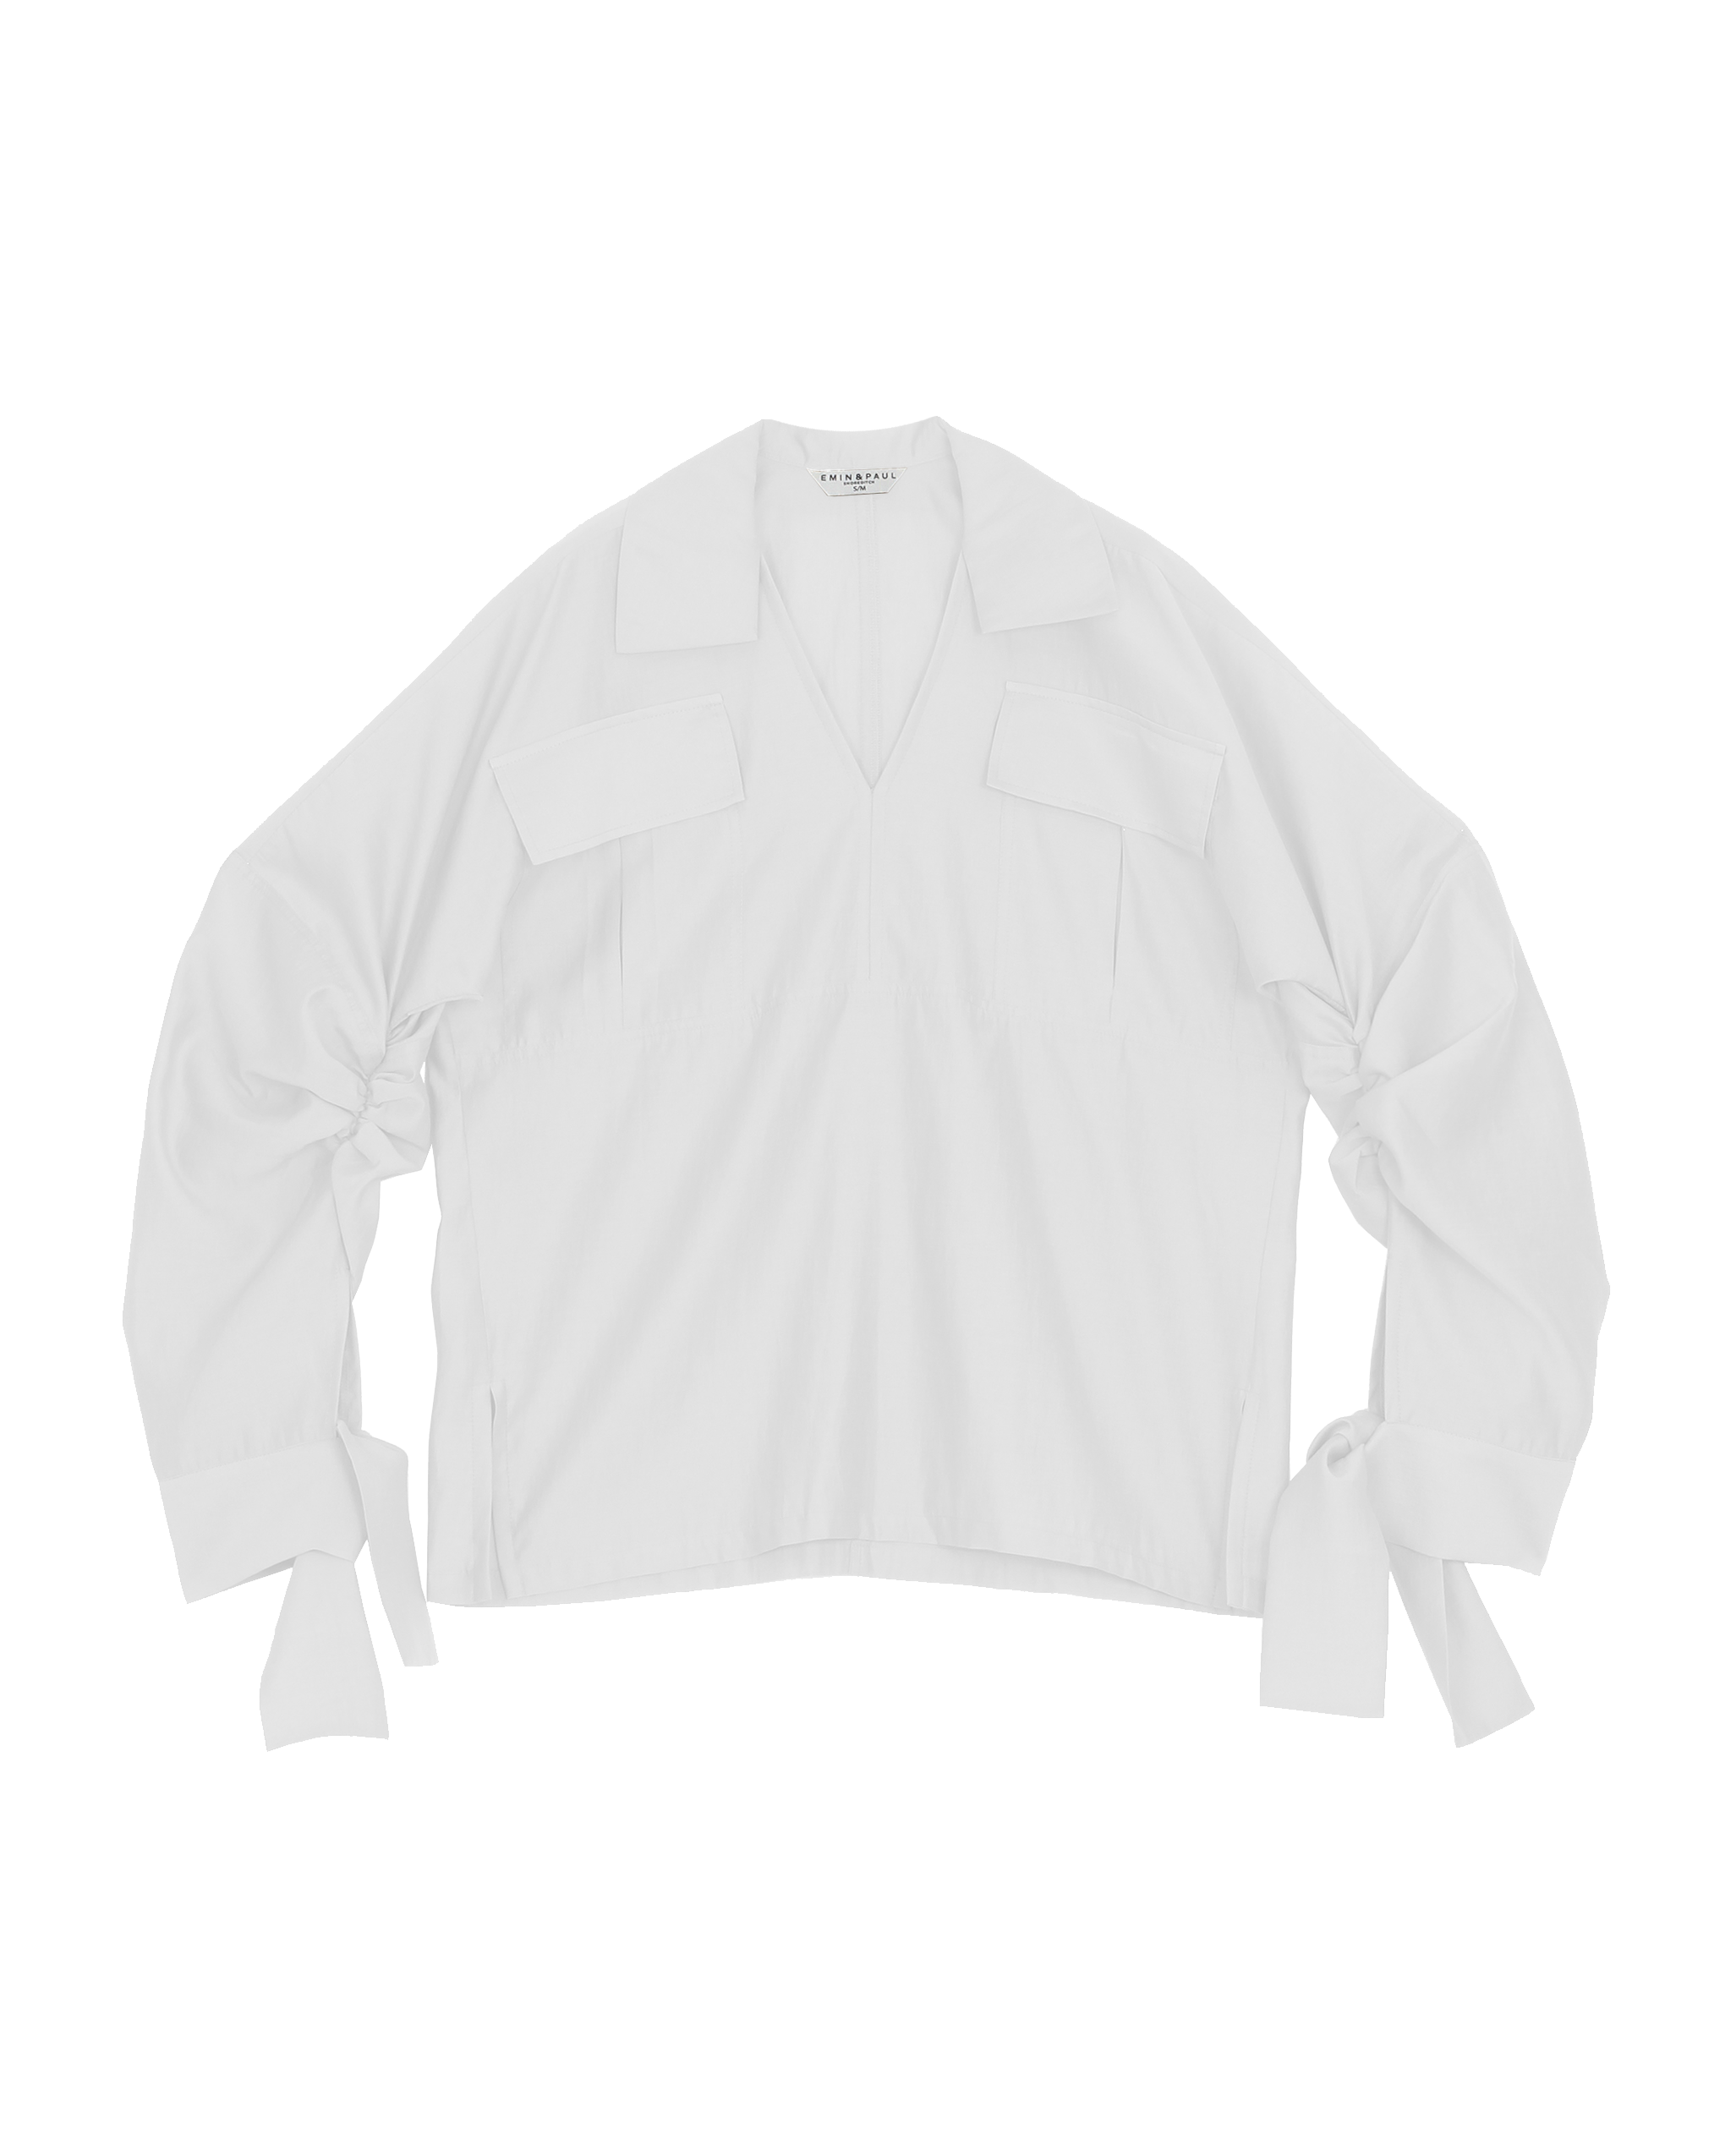 EMIN + PAUL white ruched sleeve blouse.